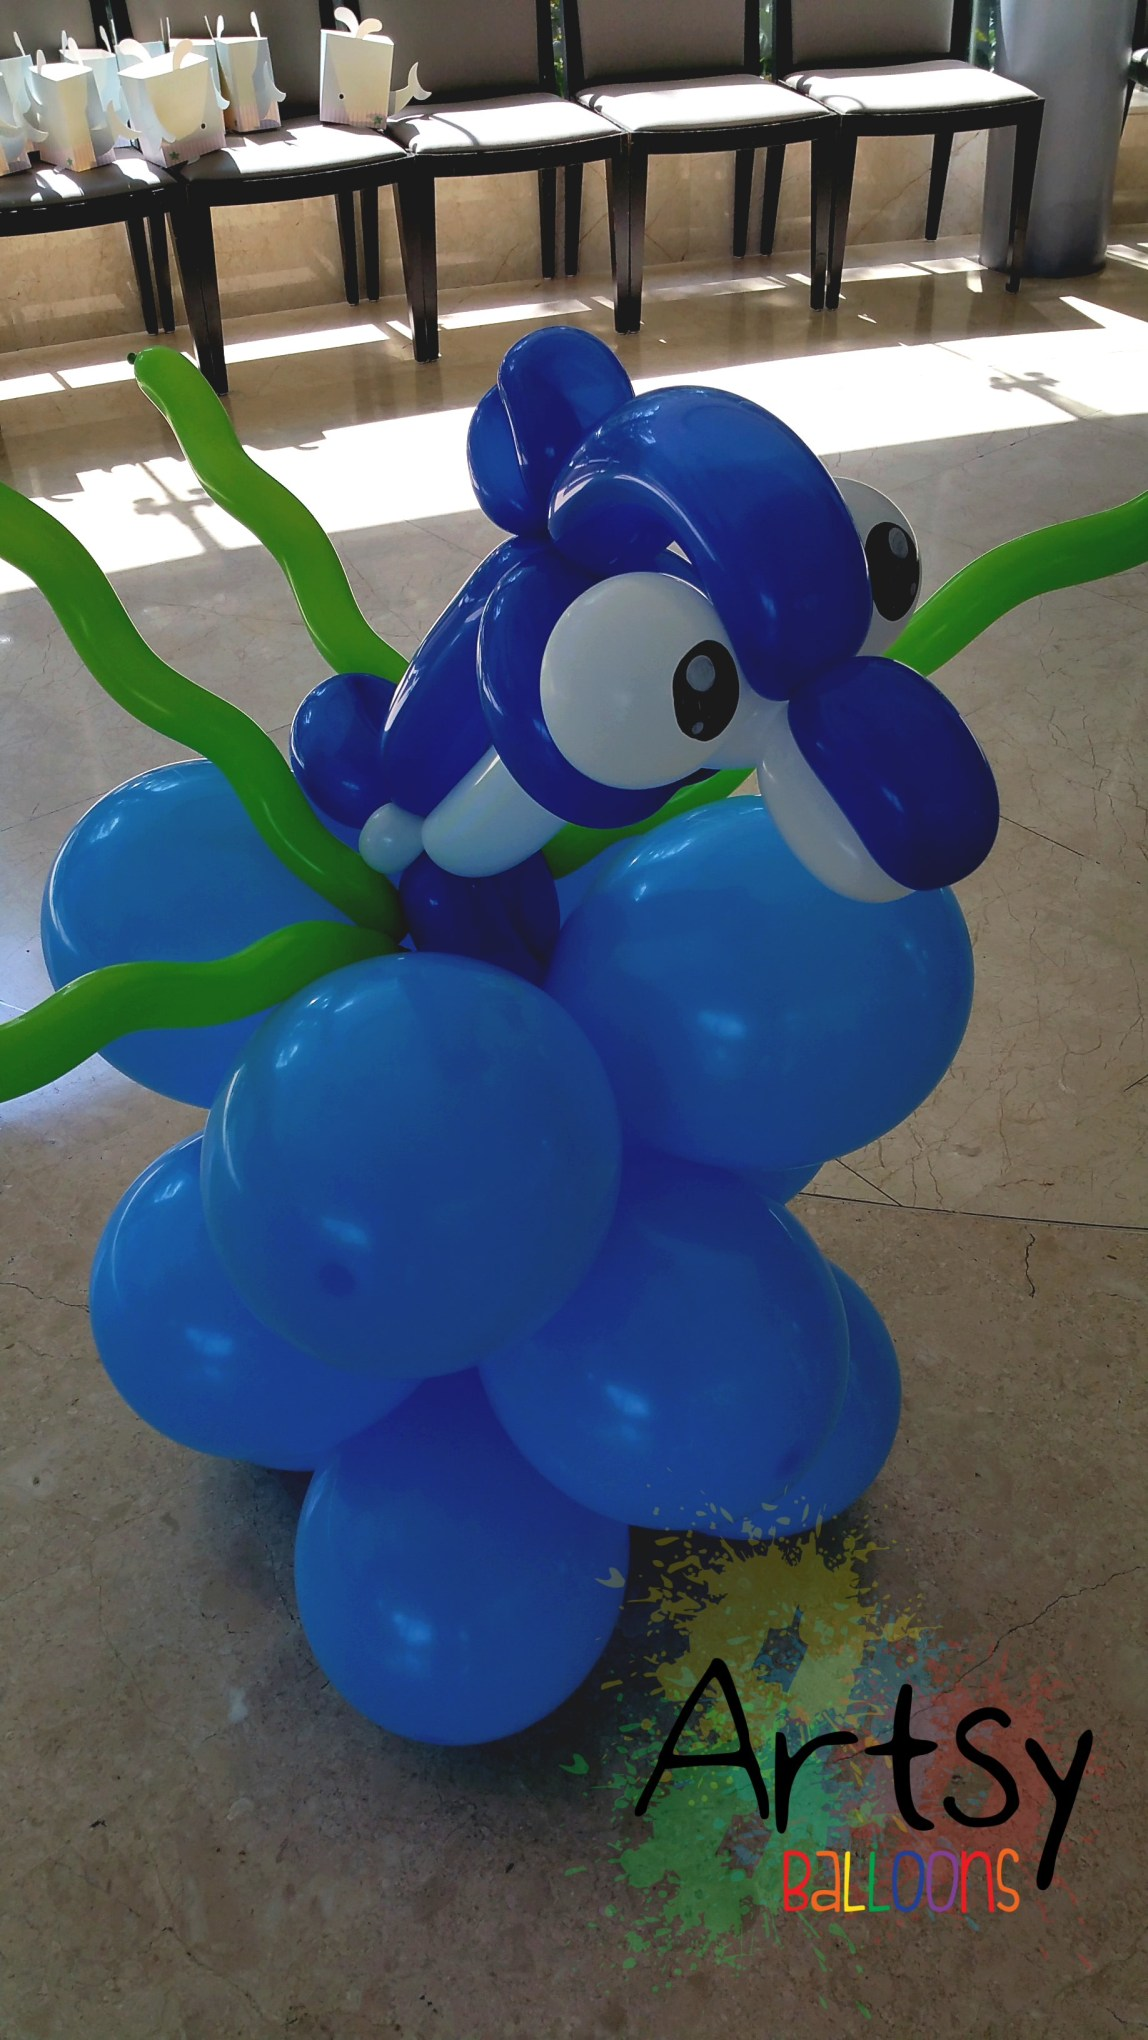 , Underwater themed balloon decorations for a function room!, Singapore Balloon Decoration Services - Balloon Workshop and Balloon Sculpting